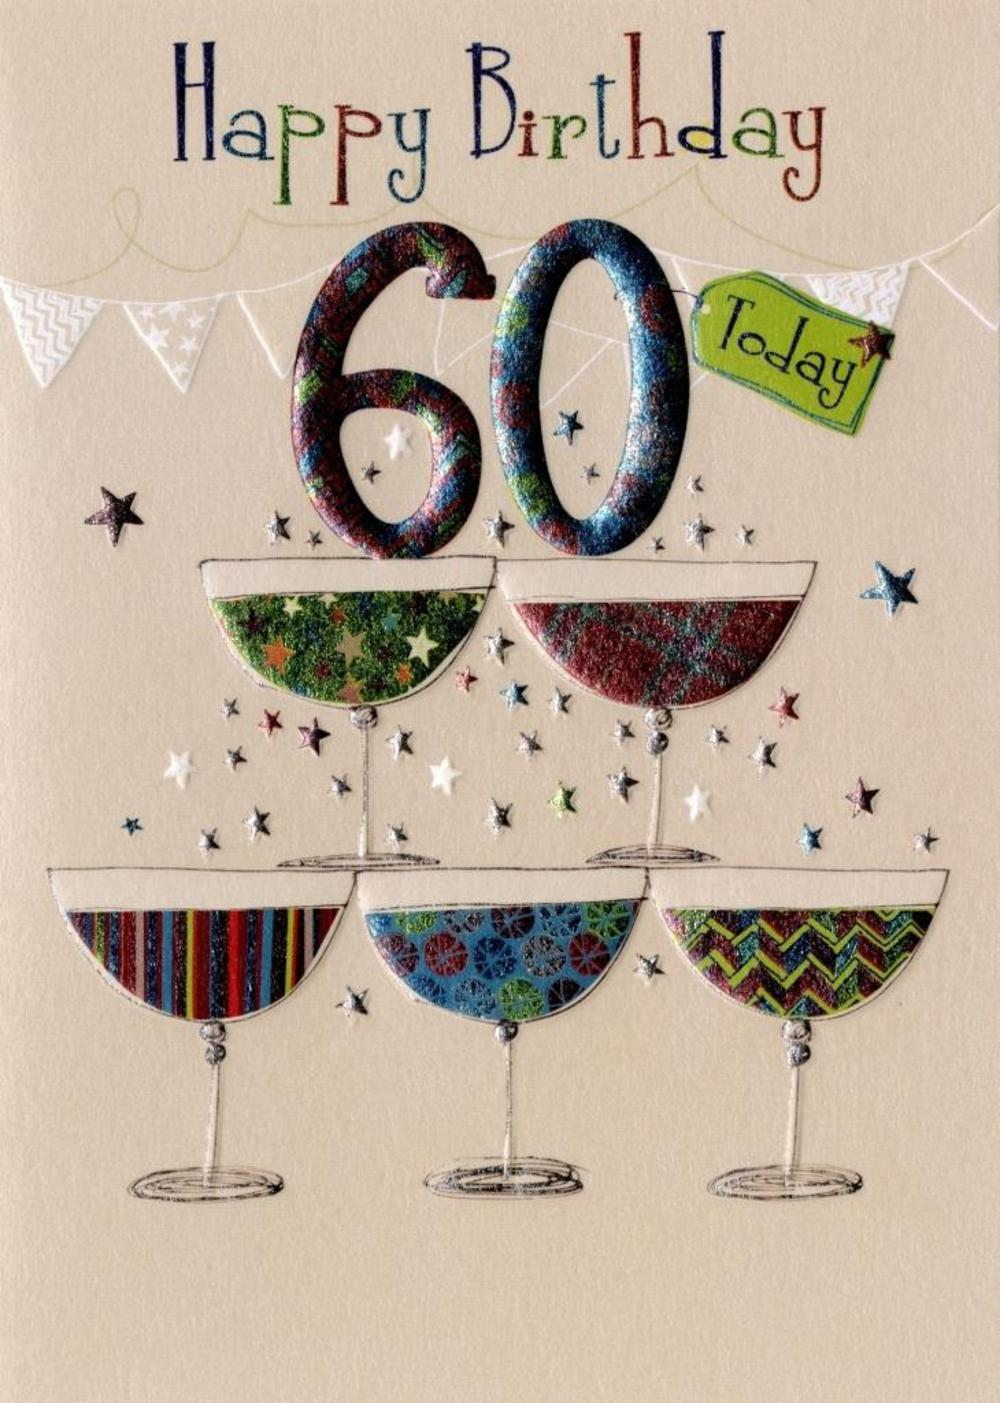 Happy 60th Birthday Greeting Card | Cards | Love Kates